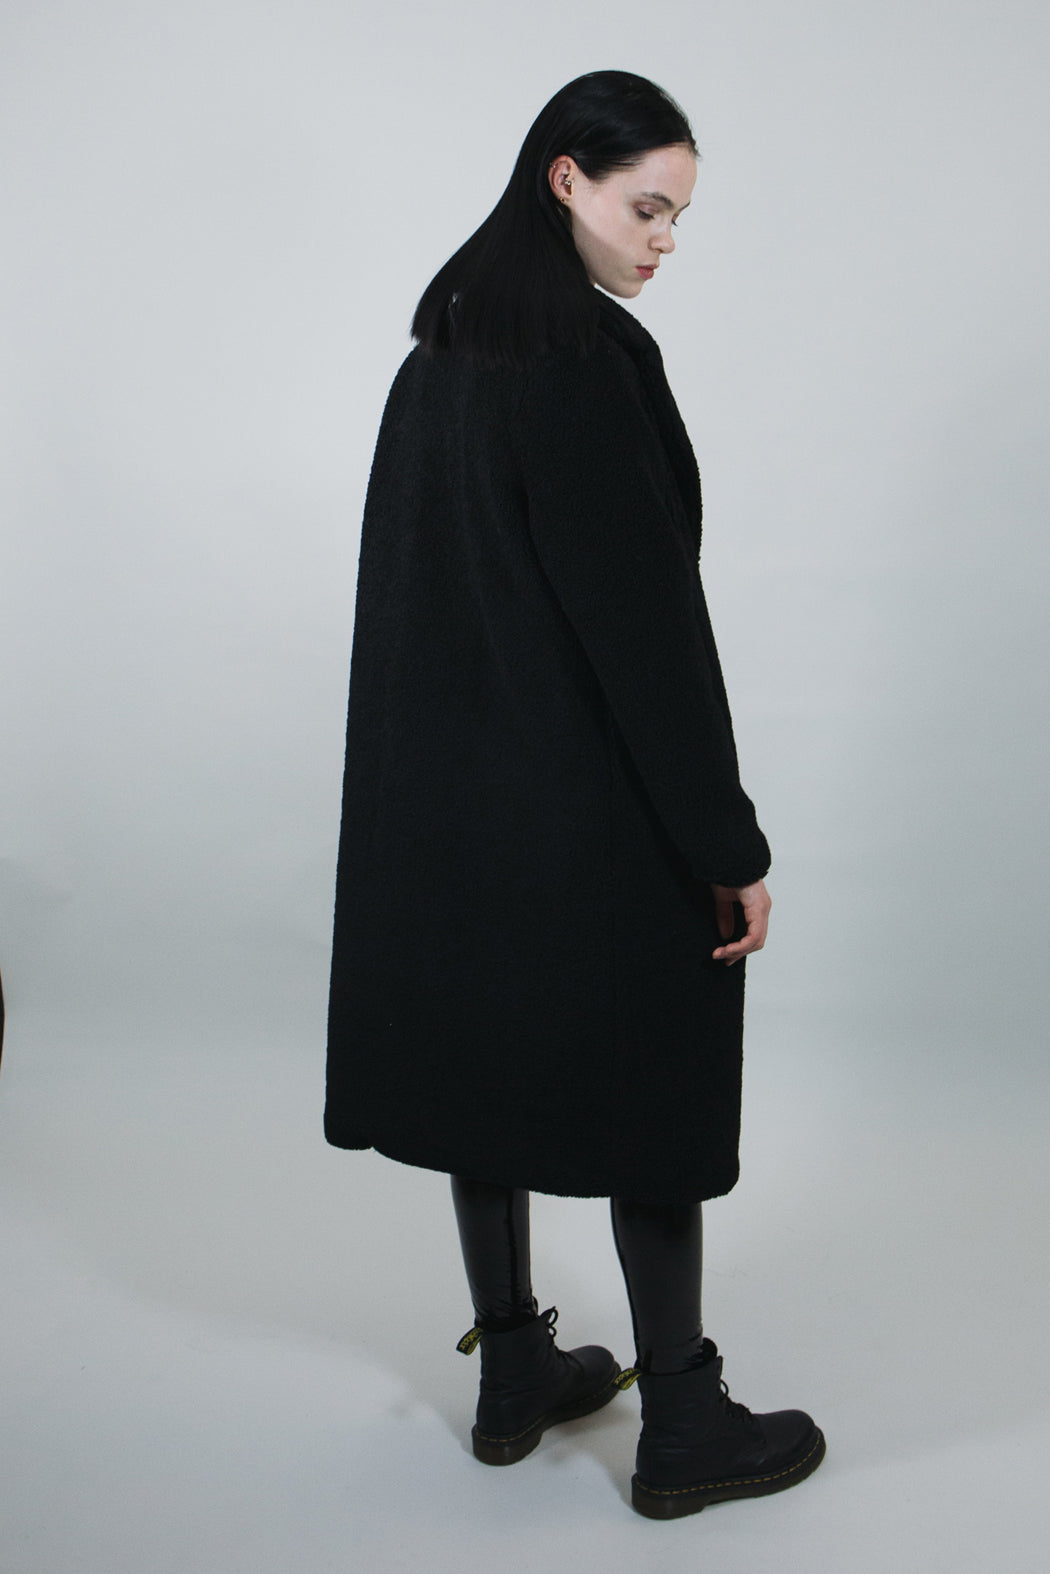 mary wyatt london long black teddy coat alternative goth fashion